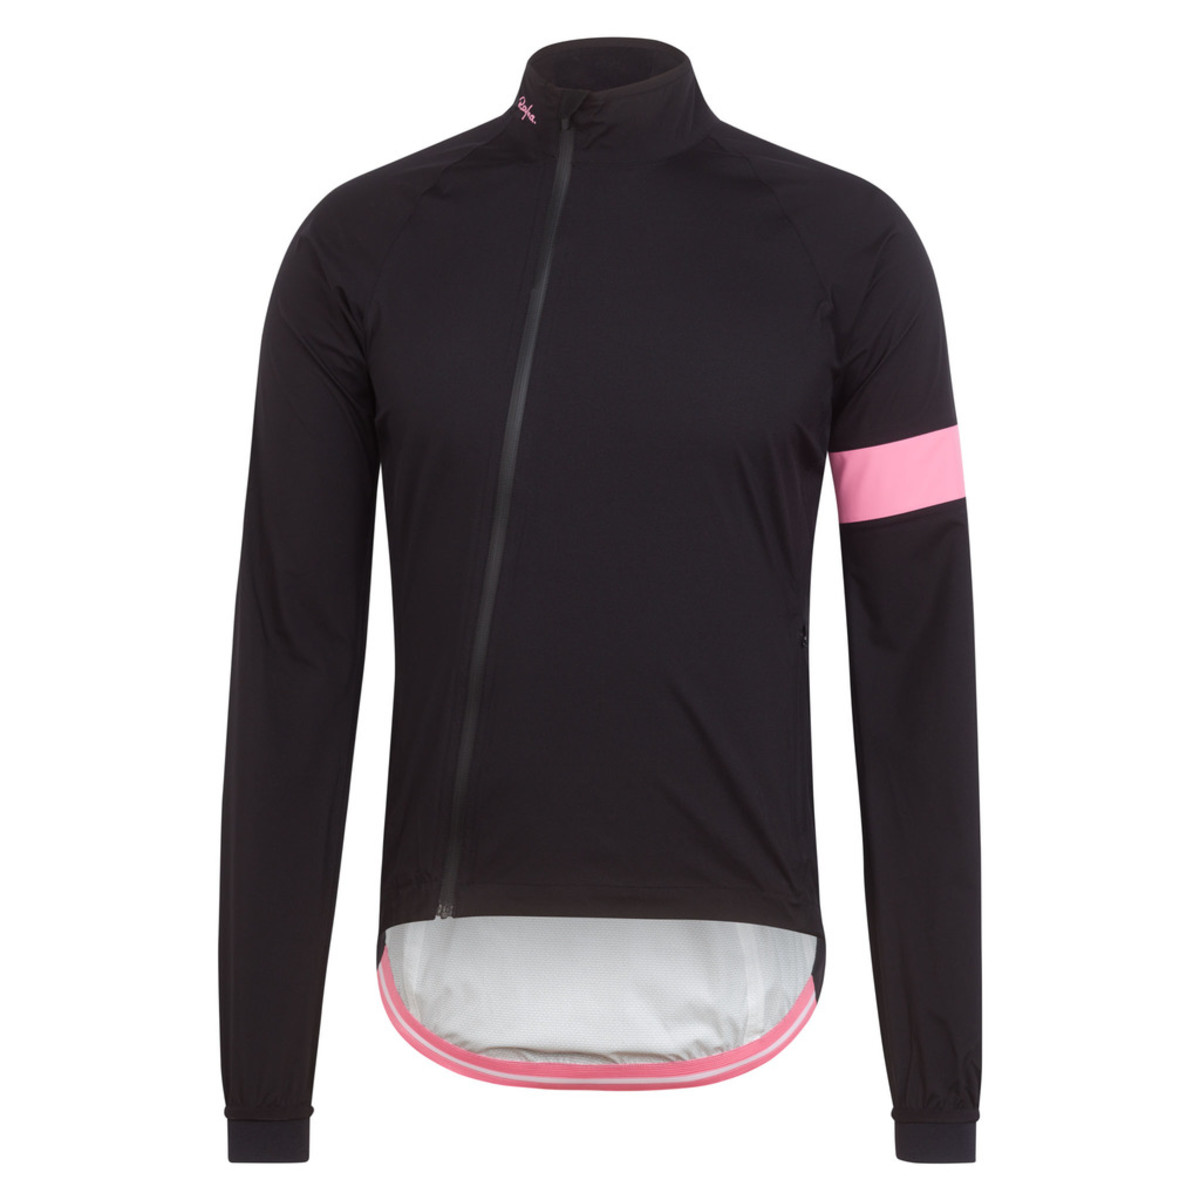 Rapha Classic Rain Jacket Collector's Jacket